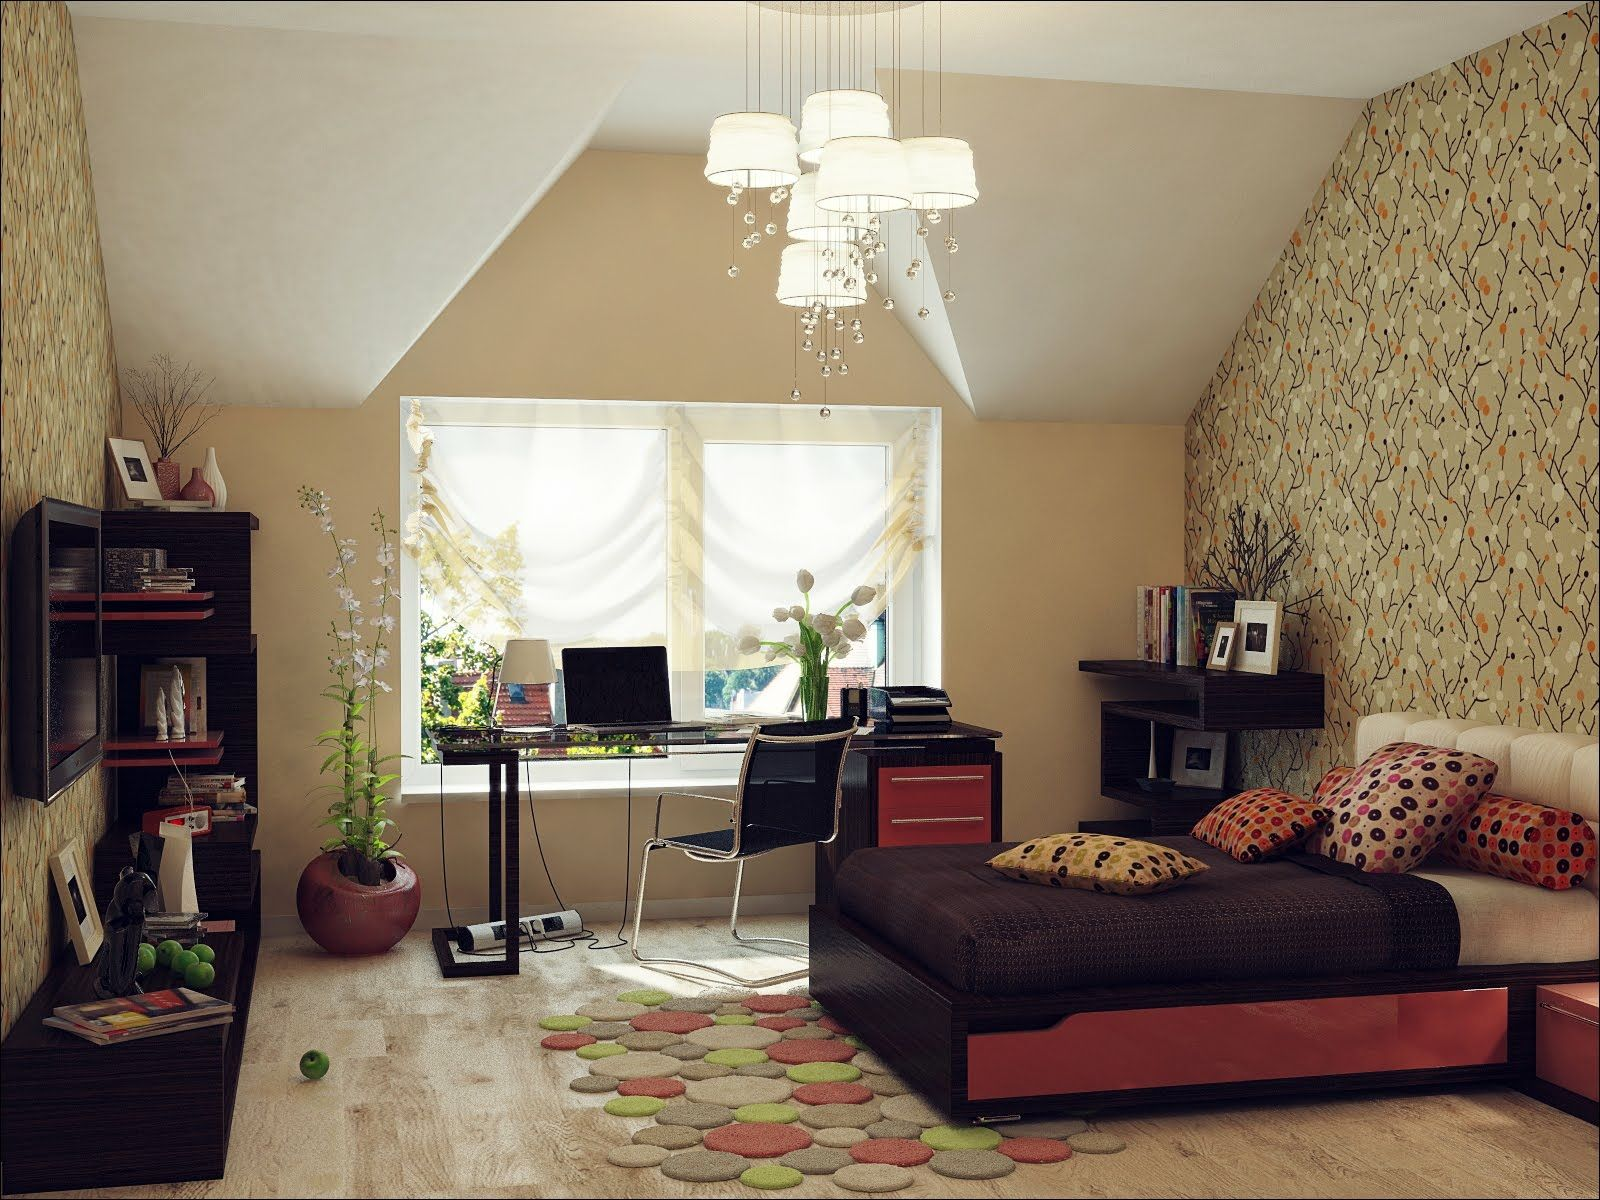 Vanity Attic Bedrooms With Slanted Walls Of Angle Ceilings Sloped Ceiling